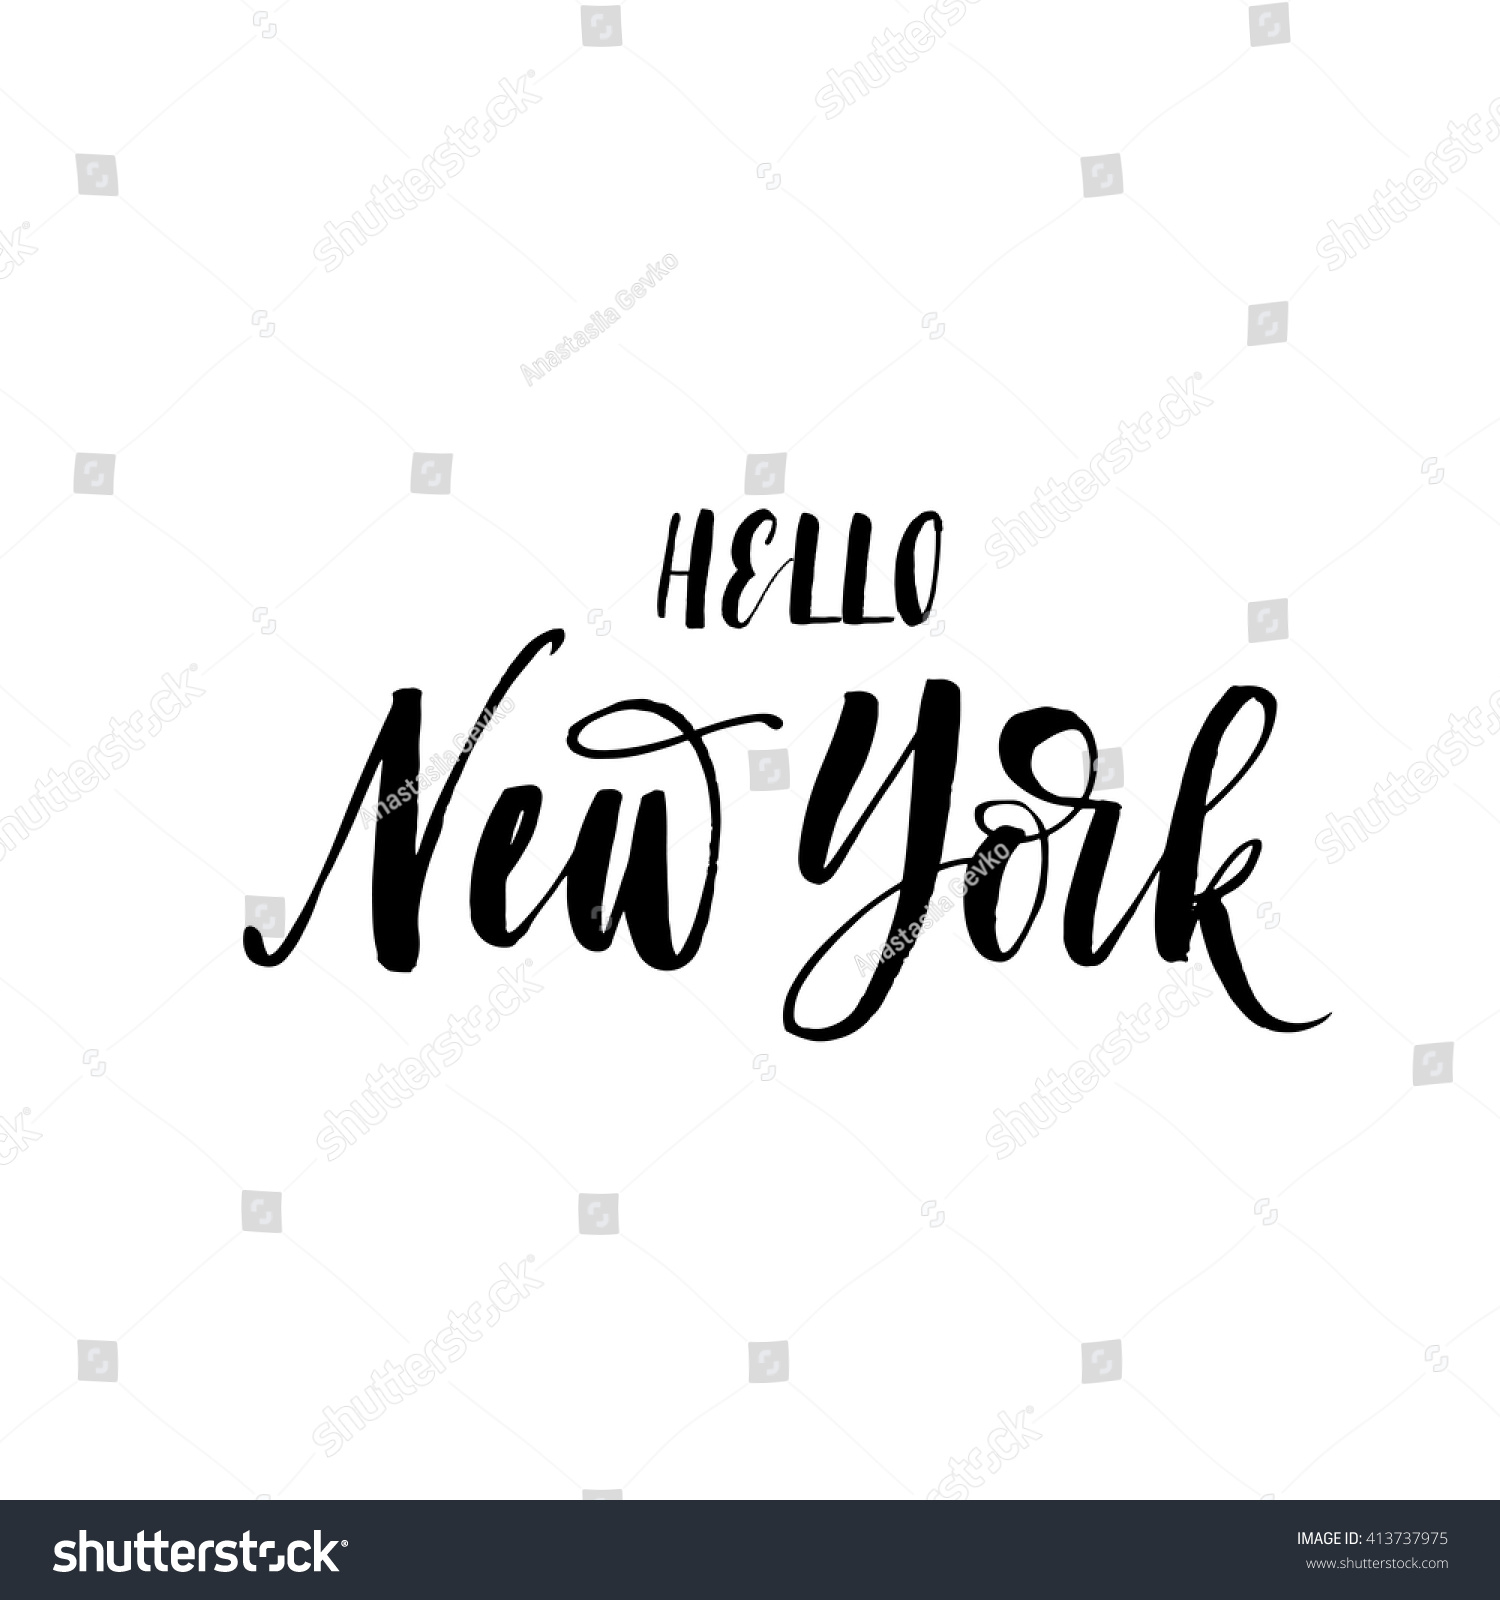 Hello new york card american city hand drawn lettering